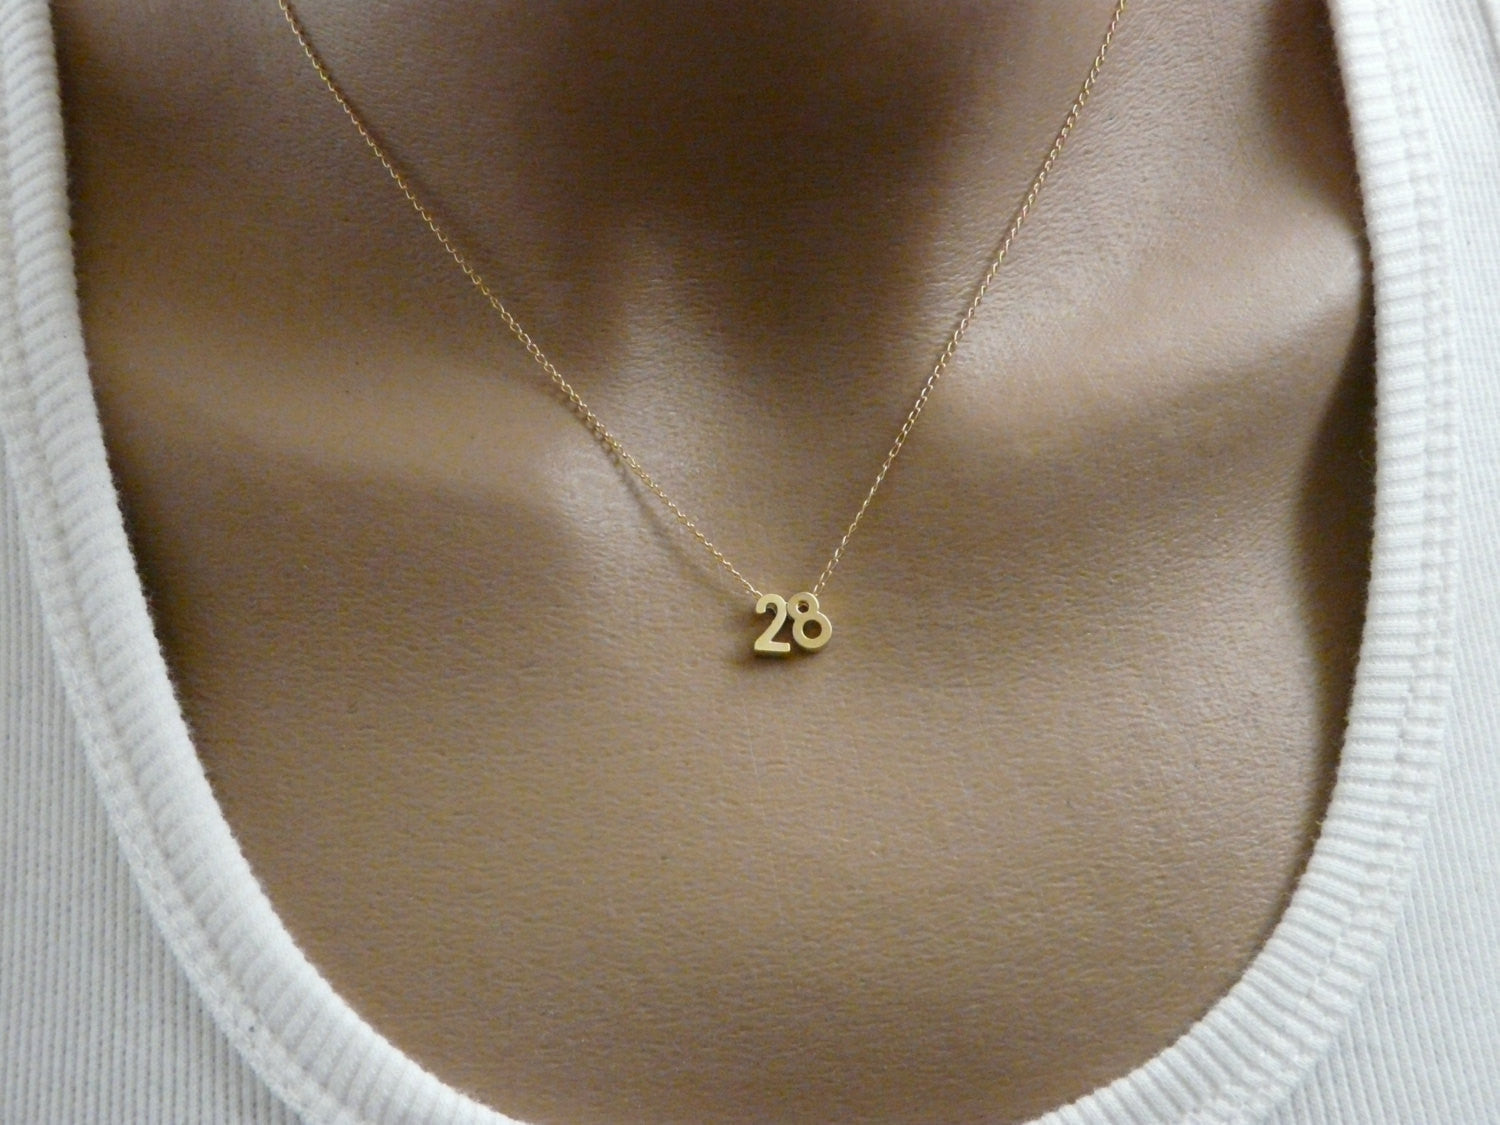 Personalized number necklace - OpaLandJewelry